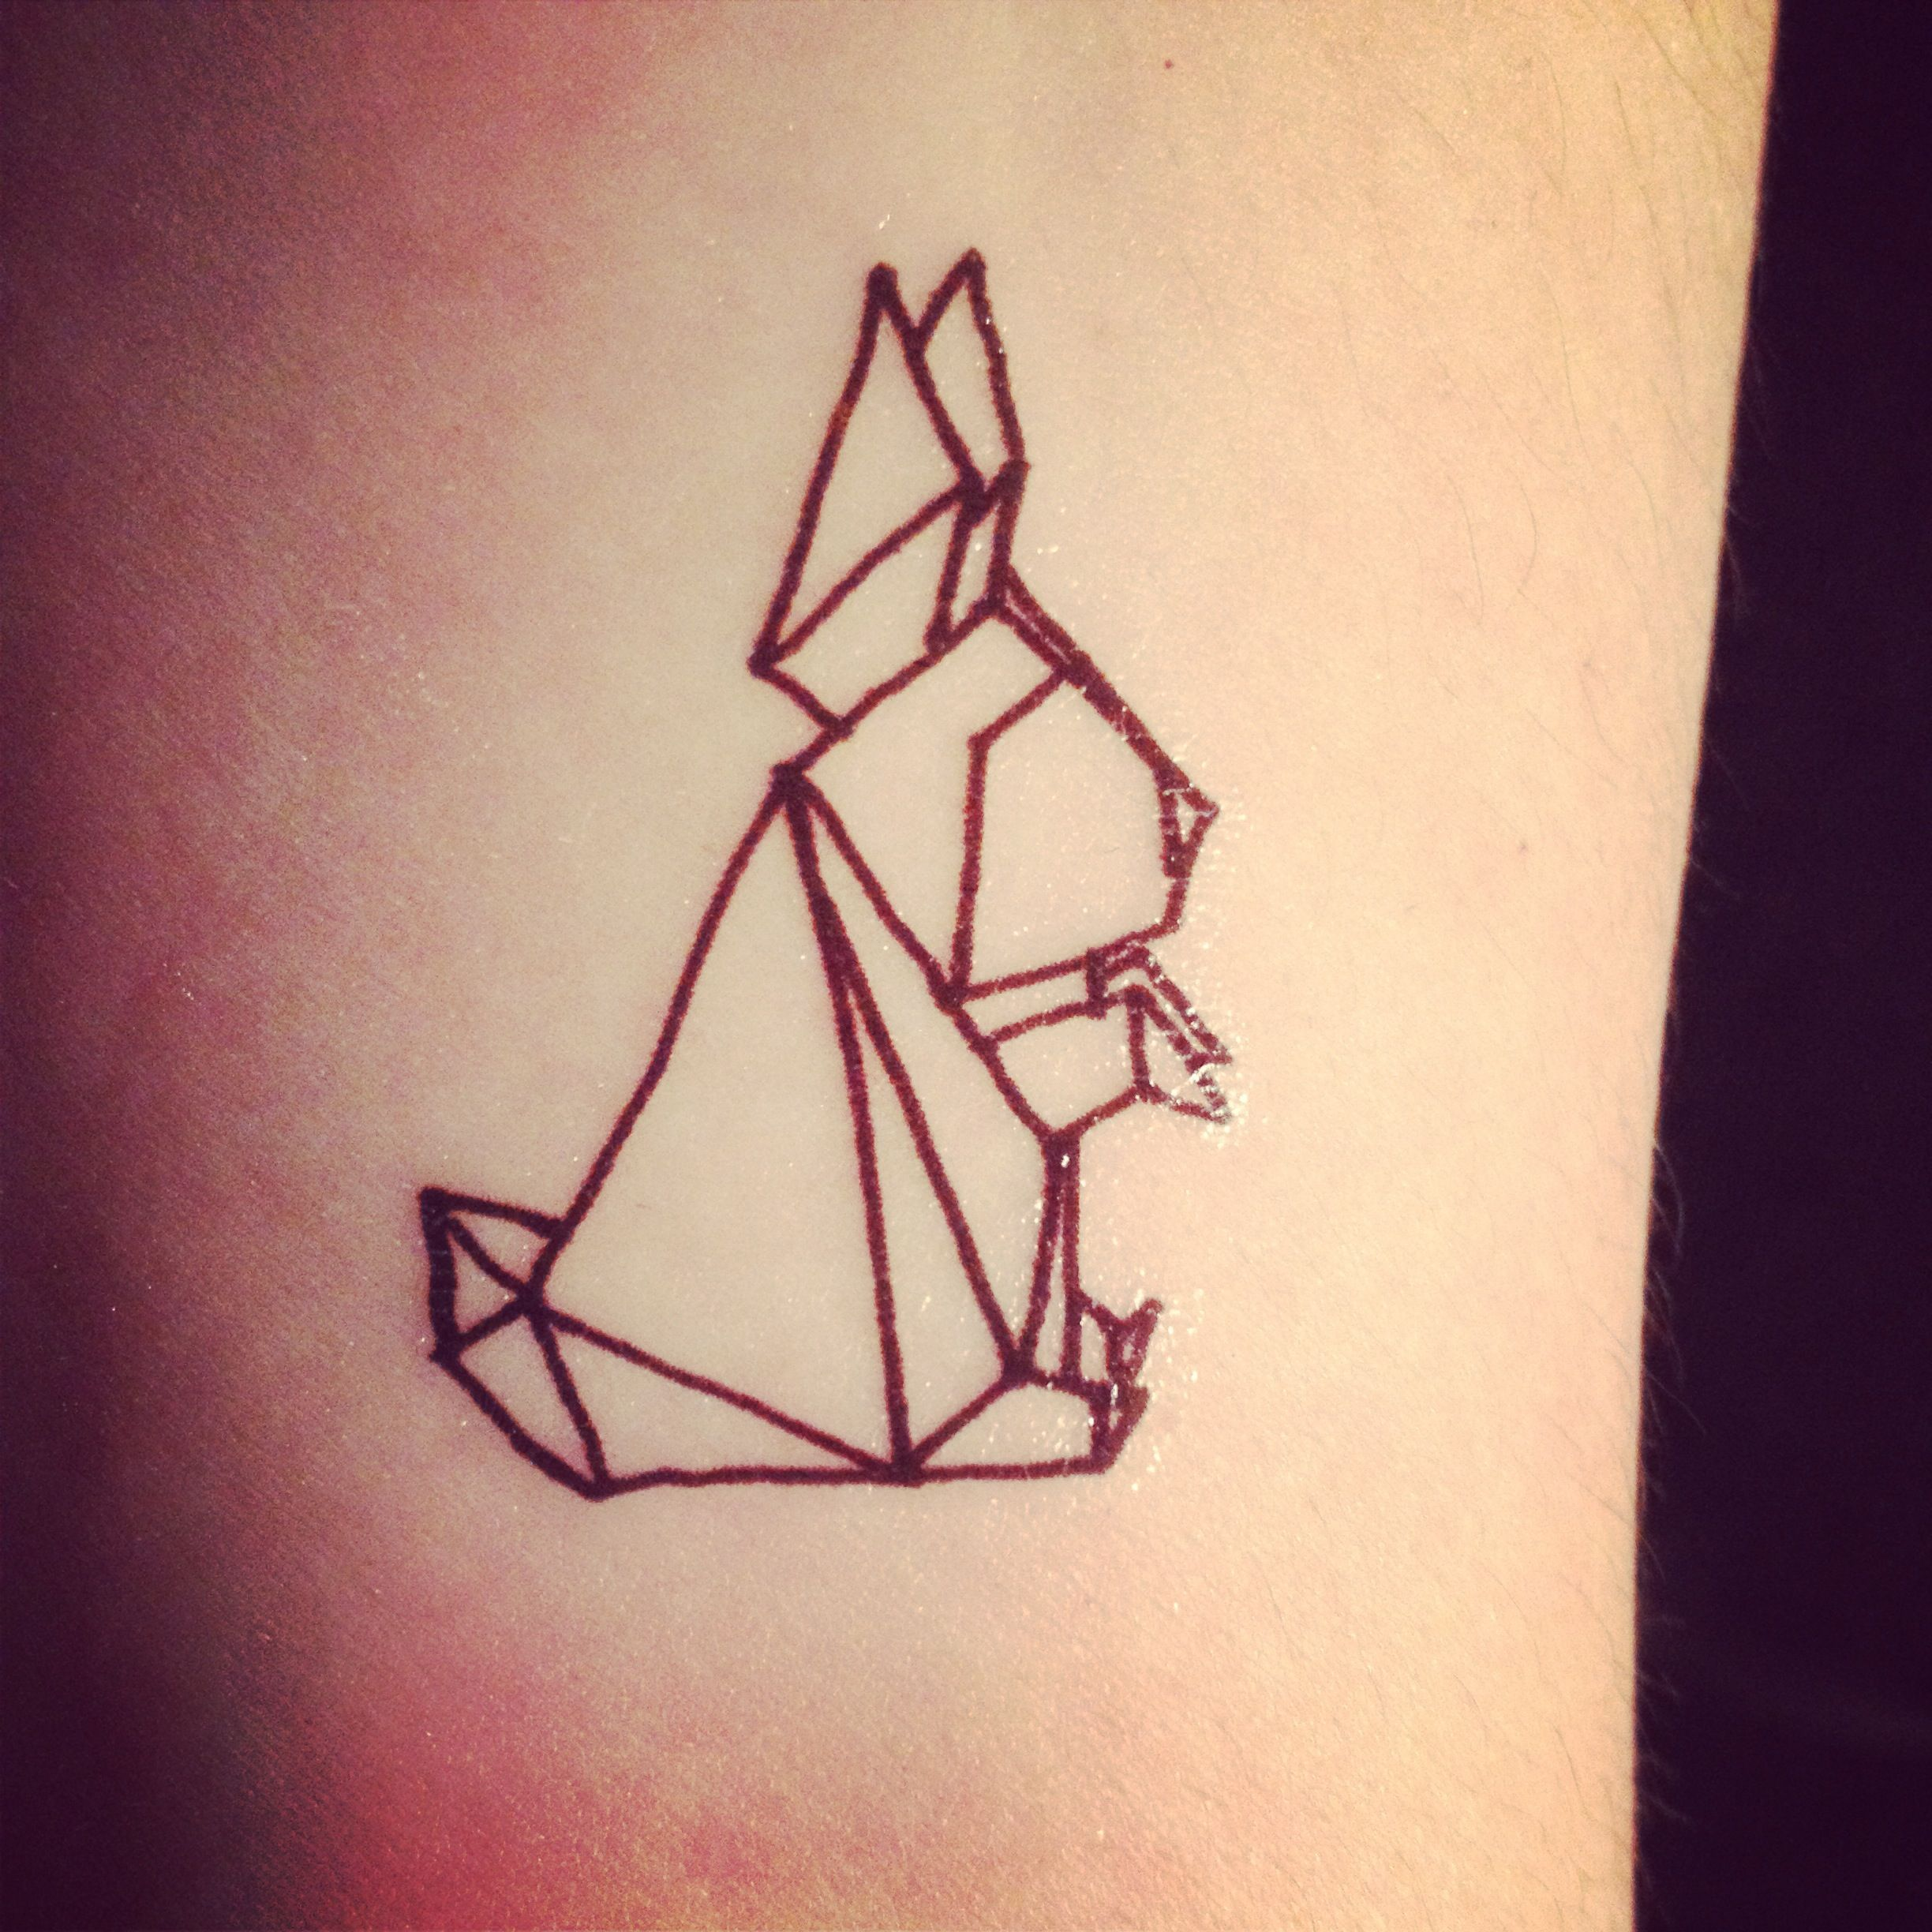 Origami Tattoo Tattoos Tumblr